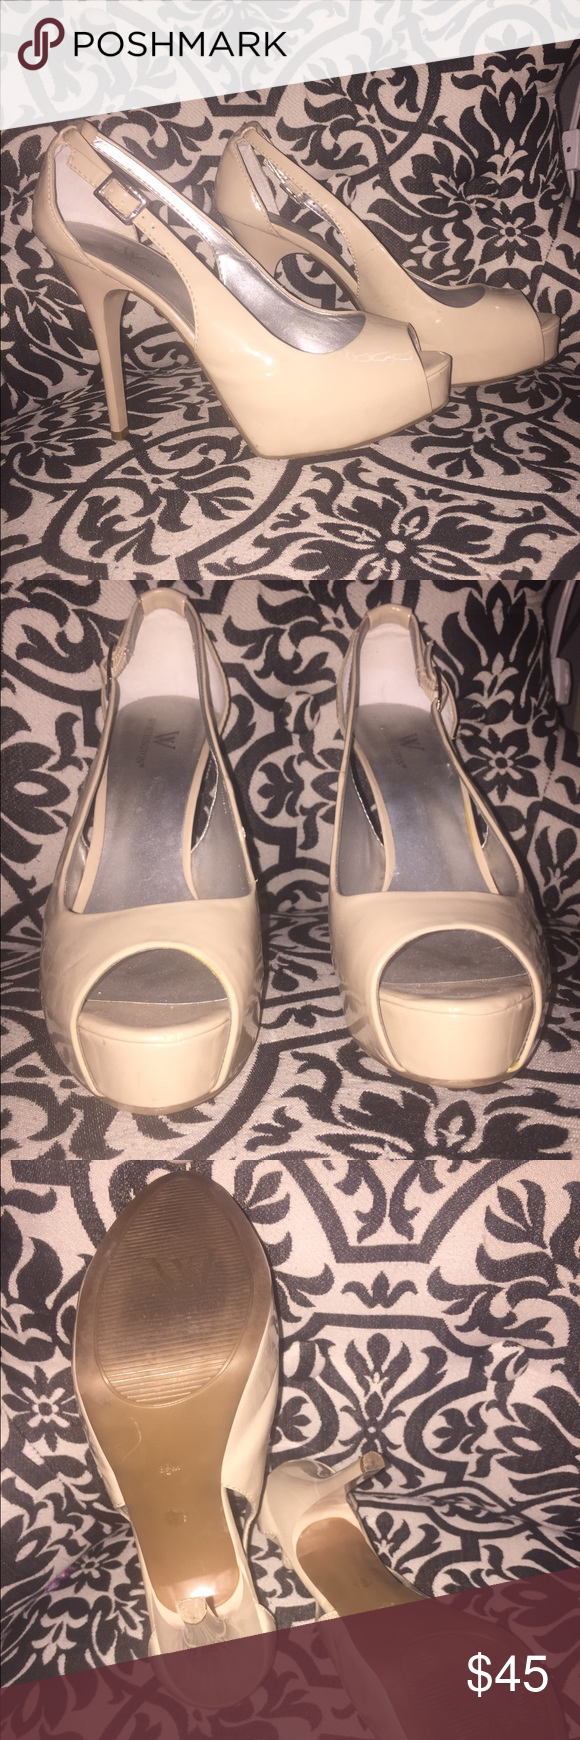 Worthington Nude Pumps These shoes are fabulous! My Mom originally got them, and they were too big for her. Now, they are too small for me! Size 8, worn but in great condition! No trades! Make me an offer! Worthington Shoes Heels